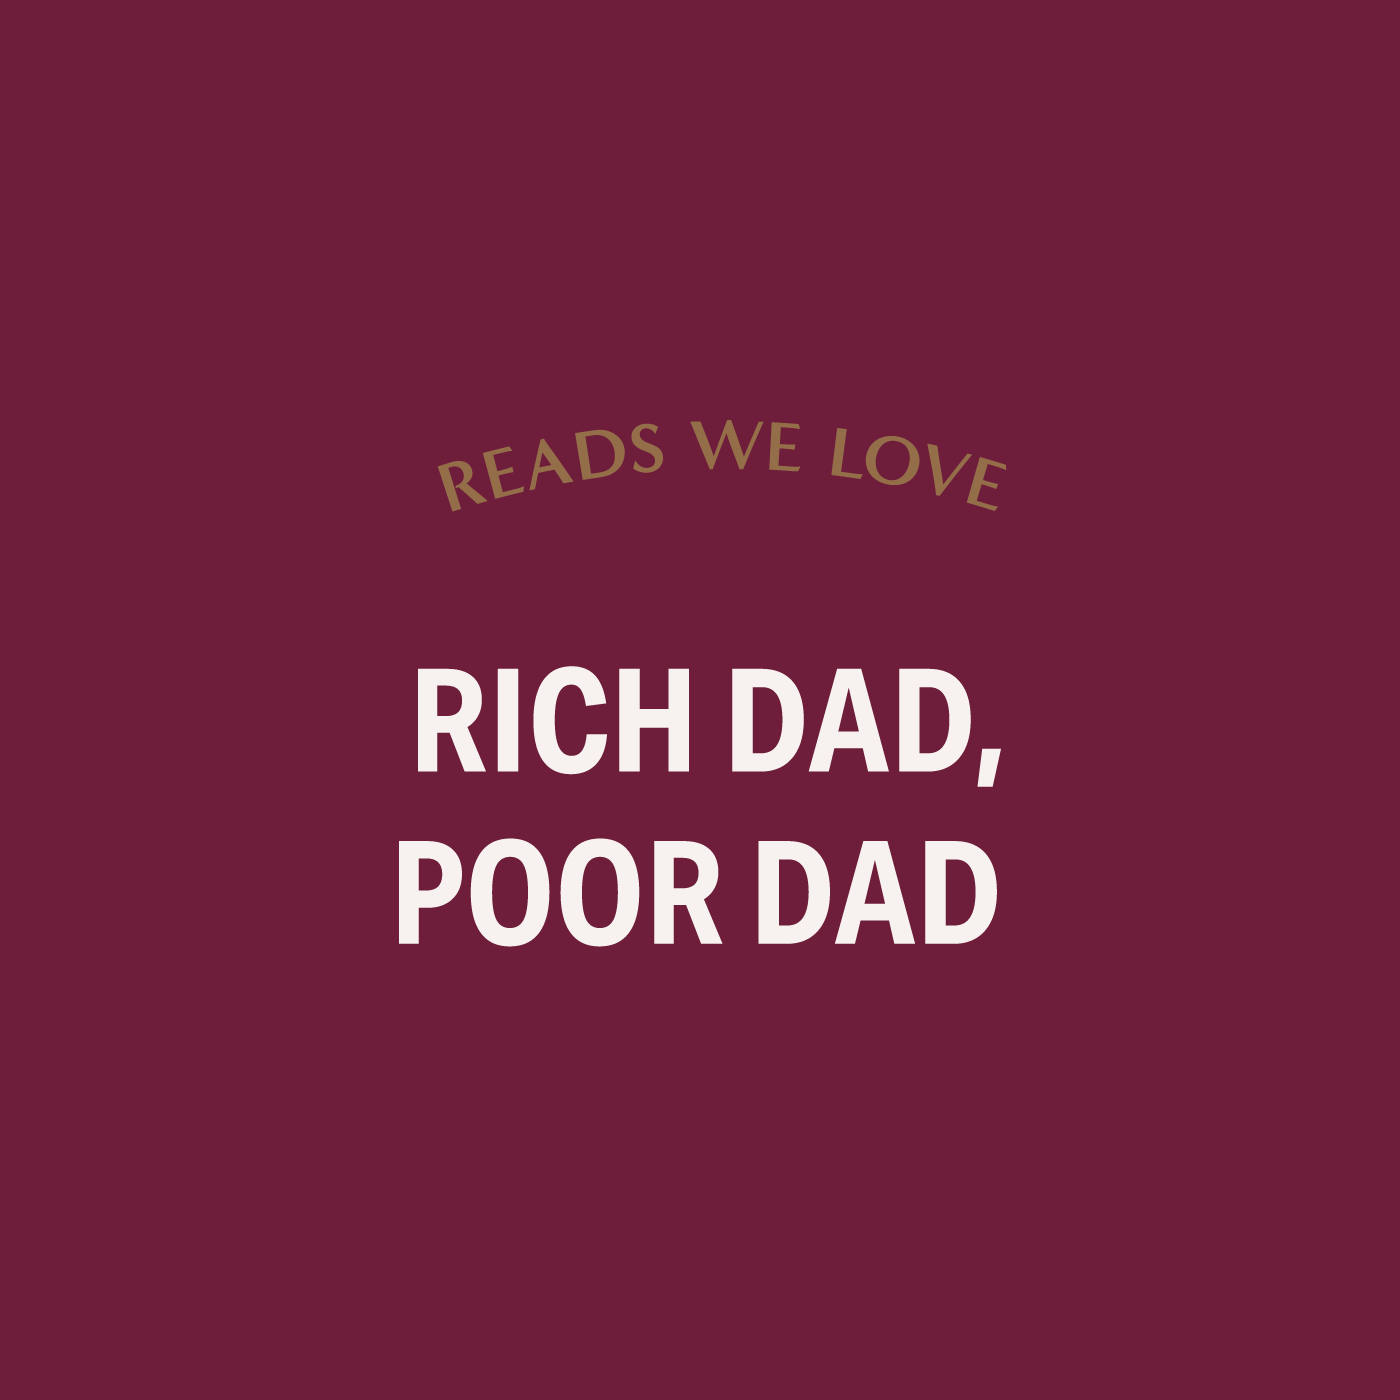 - One of the most critically acclaimed books on wealth. We love it because it focuses on mindset and details how our mind is our biggest financial asset.